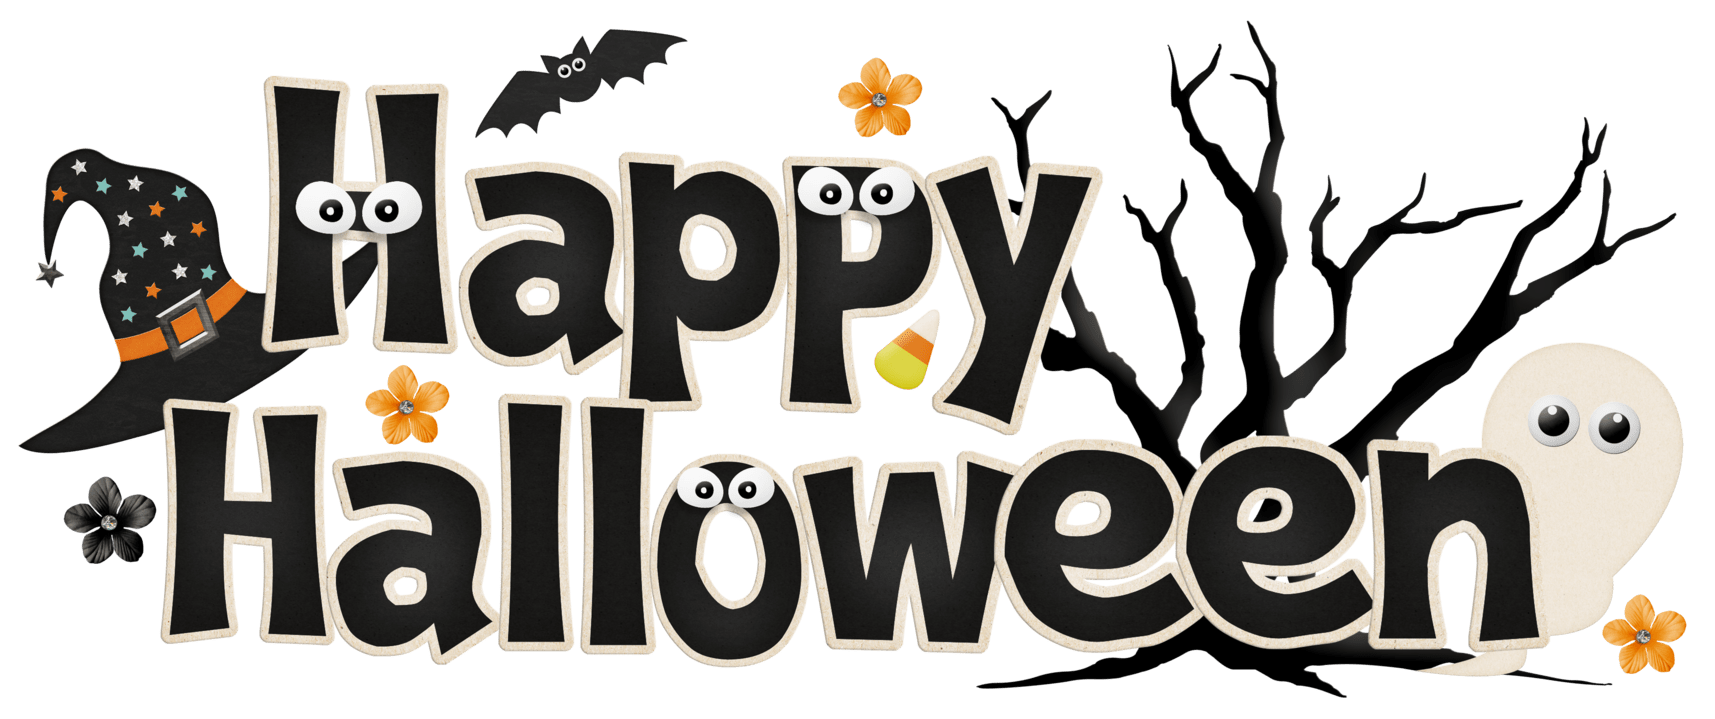 hight resolution of happy halloween clipart 3